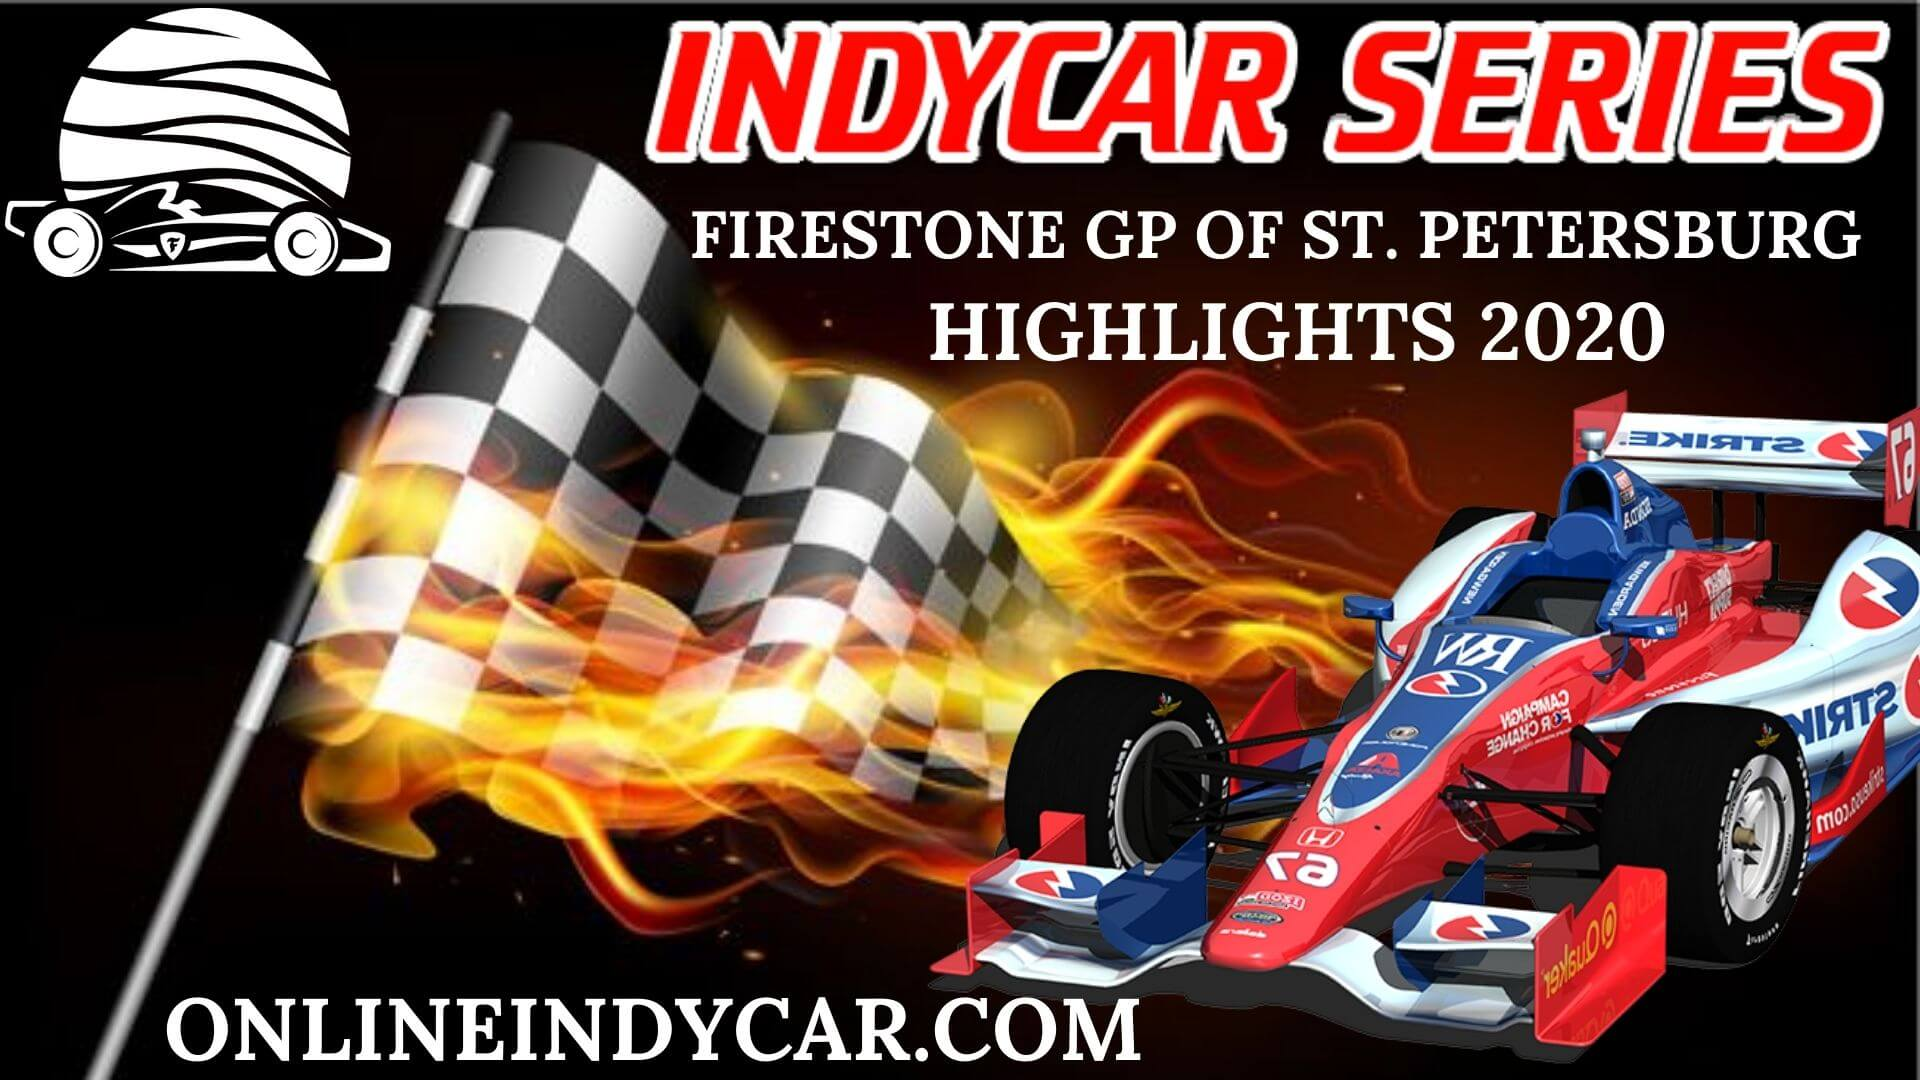 Firestone Grand Prix Of St. Petersburg INDYCAR Highlights 2020